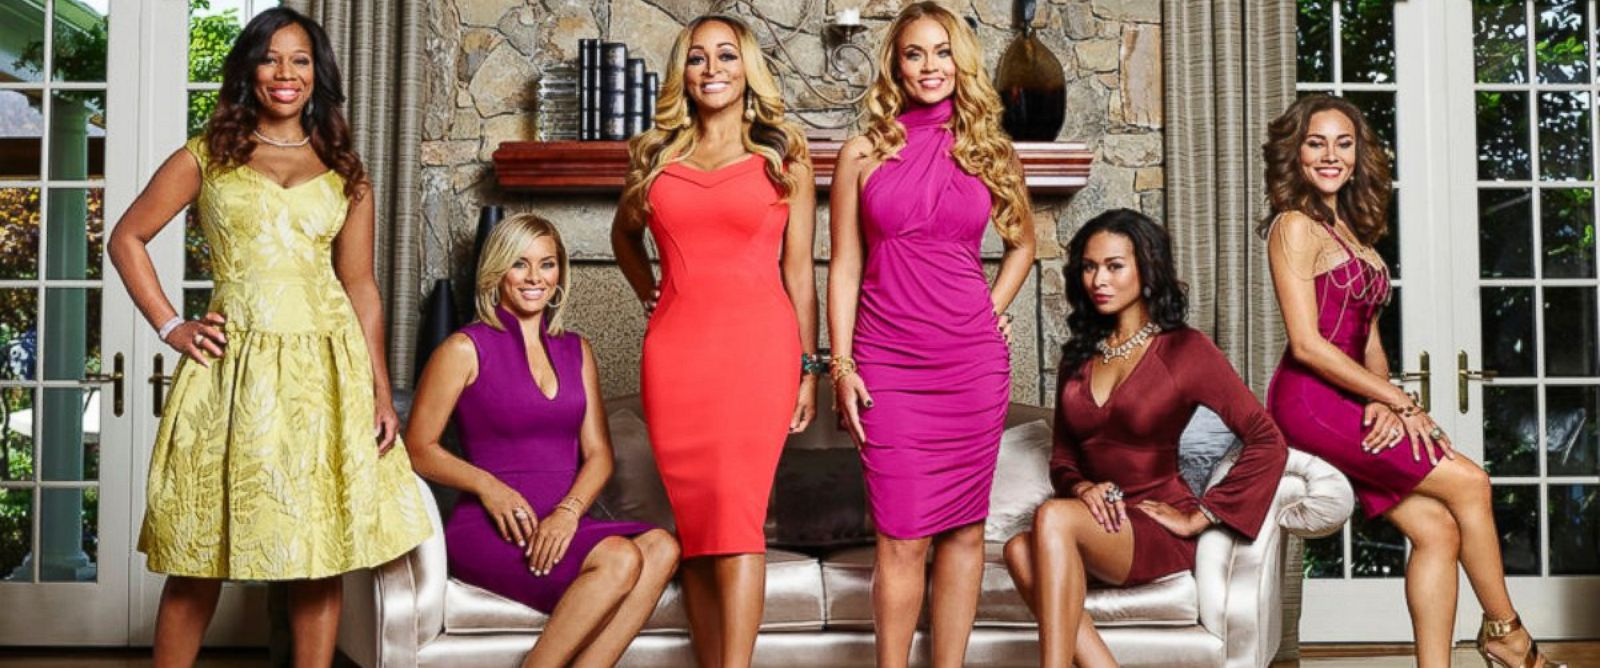 When Does Real Housewives of Potomac Season 2 Start? Premiere Date